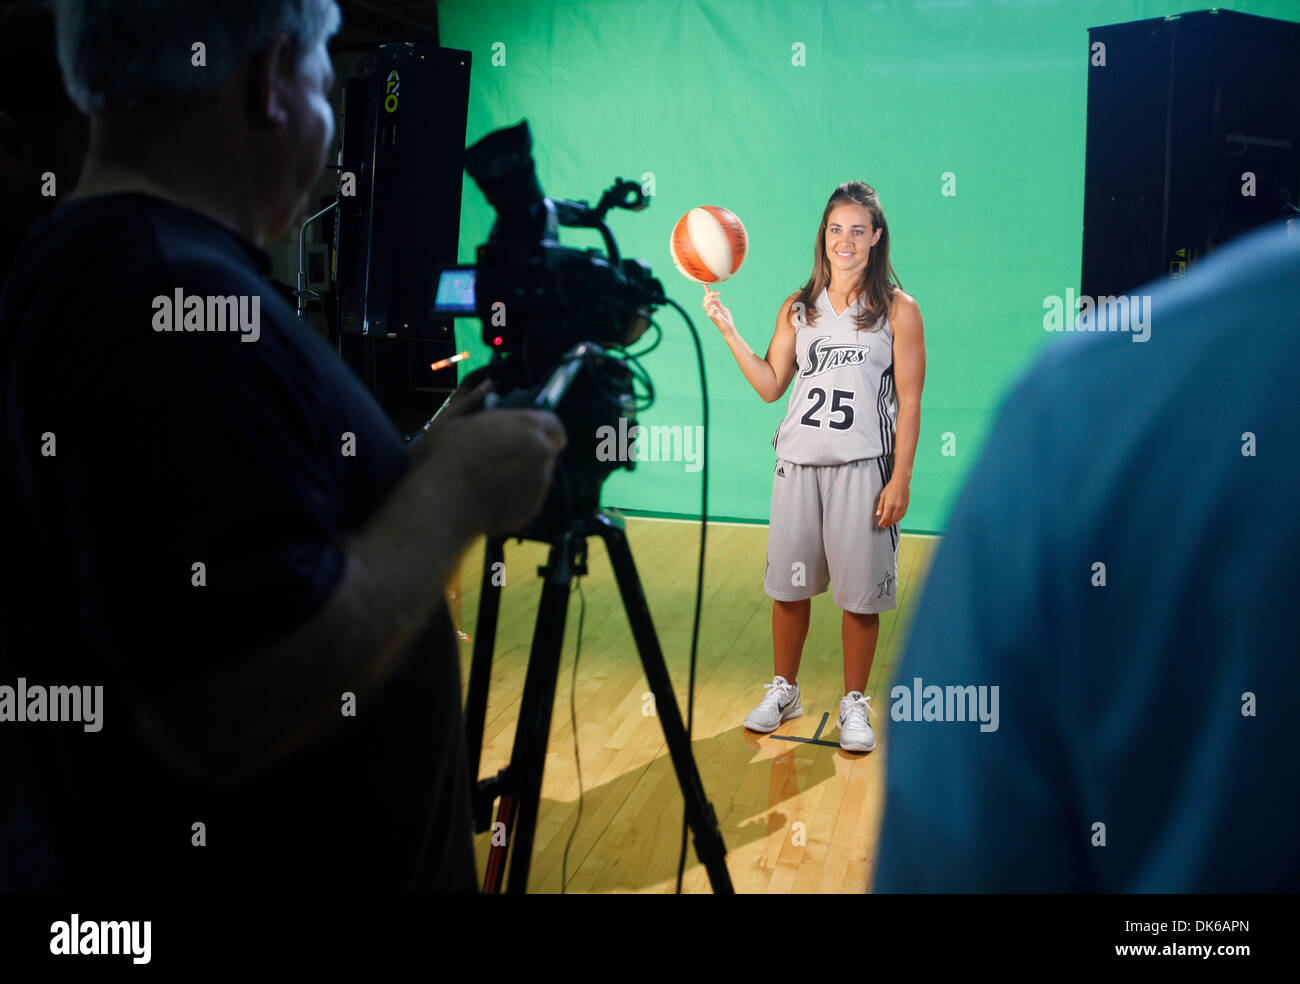 May 19, 2011 - San Antonio, TEXAS, USA - The WNBA's Silver Stars Becky Hammon performas in front of a green screen Wednesday May18, 2011 during the team's media day at their practice facility, the Antioch Baptist Church recreation center. (Credit Image: © San Antonio Express-News/ZUMAPRESS.com) - Stock Image